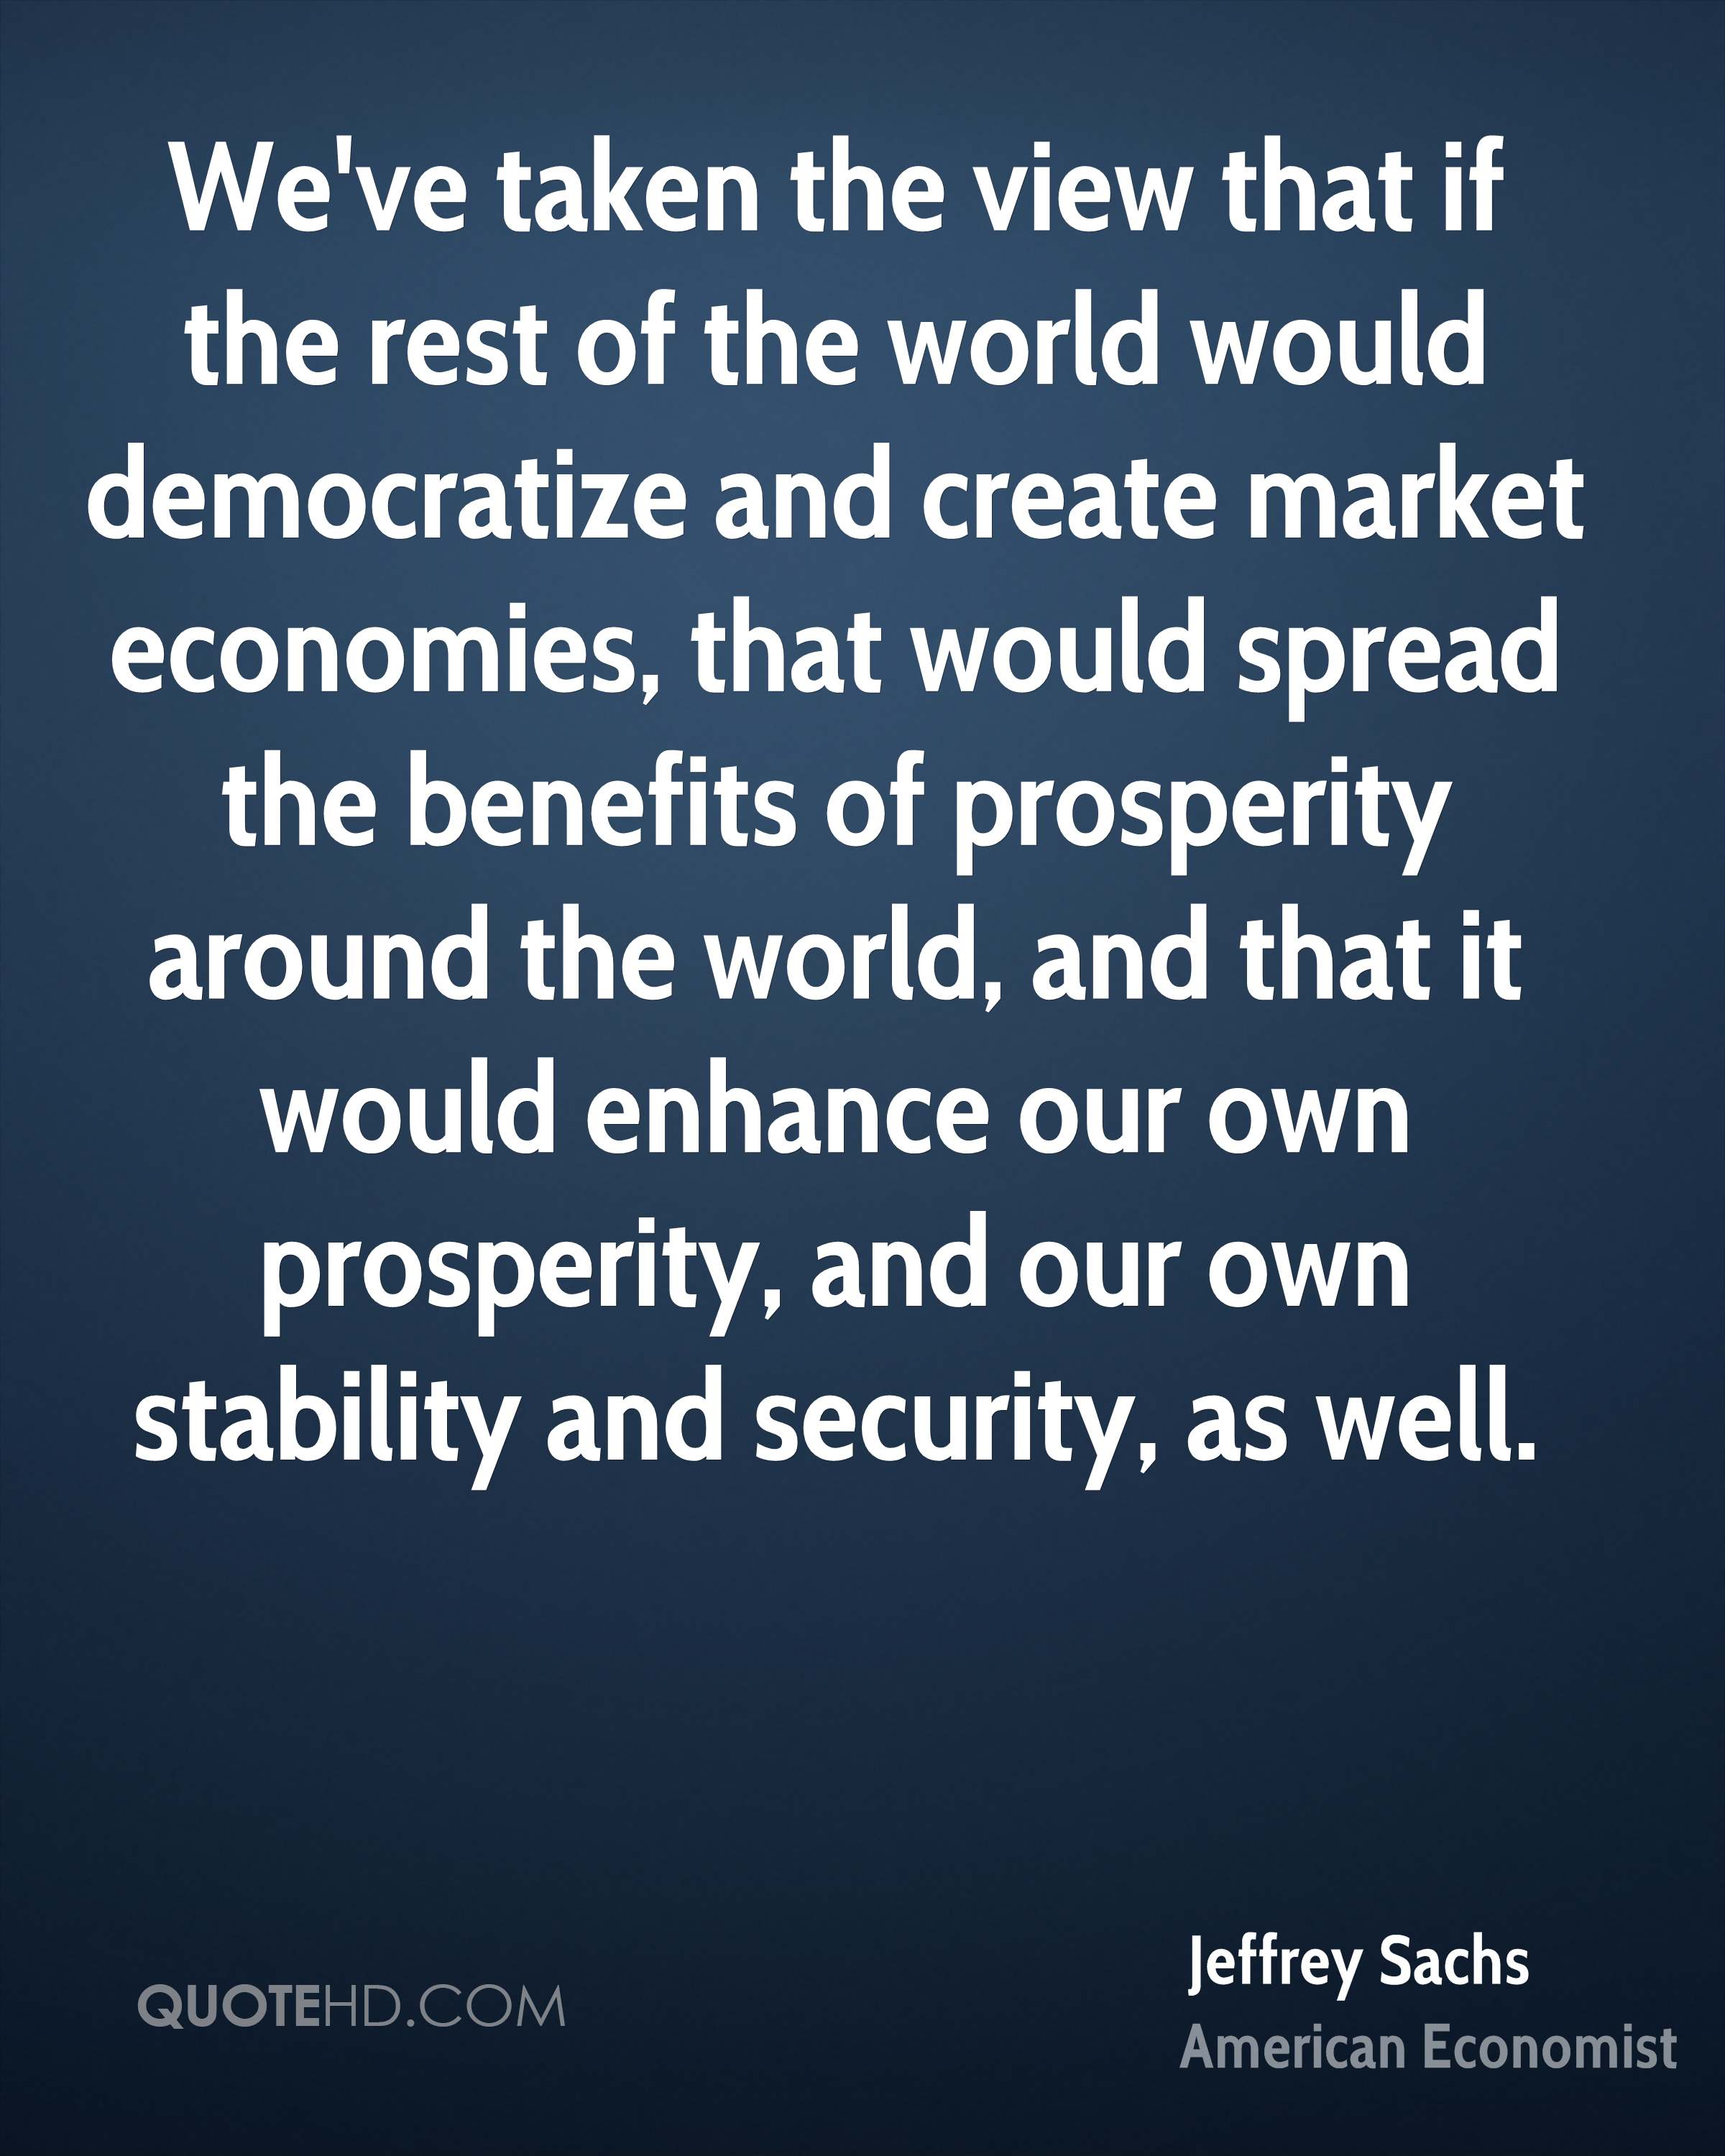 We've taken the view that if the rest of the world would democratize and create market economies, that would spread the benefits of prosperity around the world, and that it would enhance our own prosperity, and our own stability and security, as well.